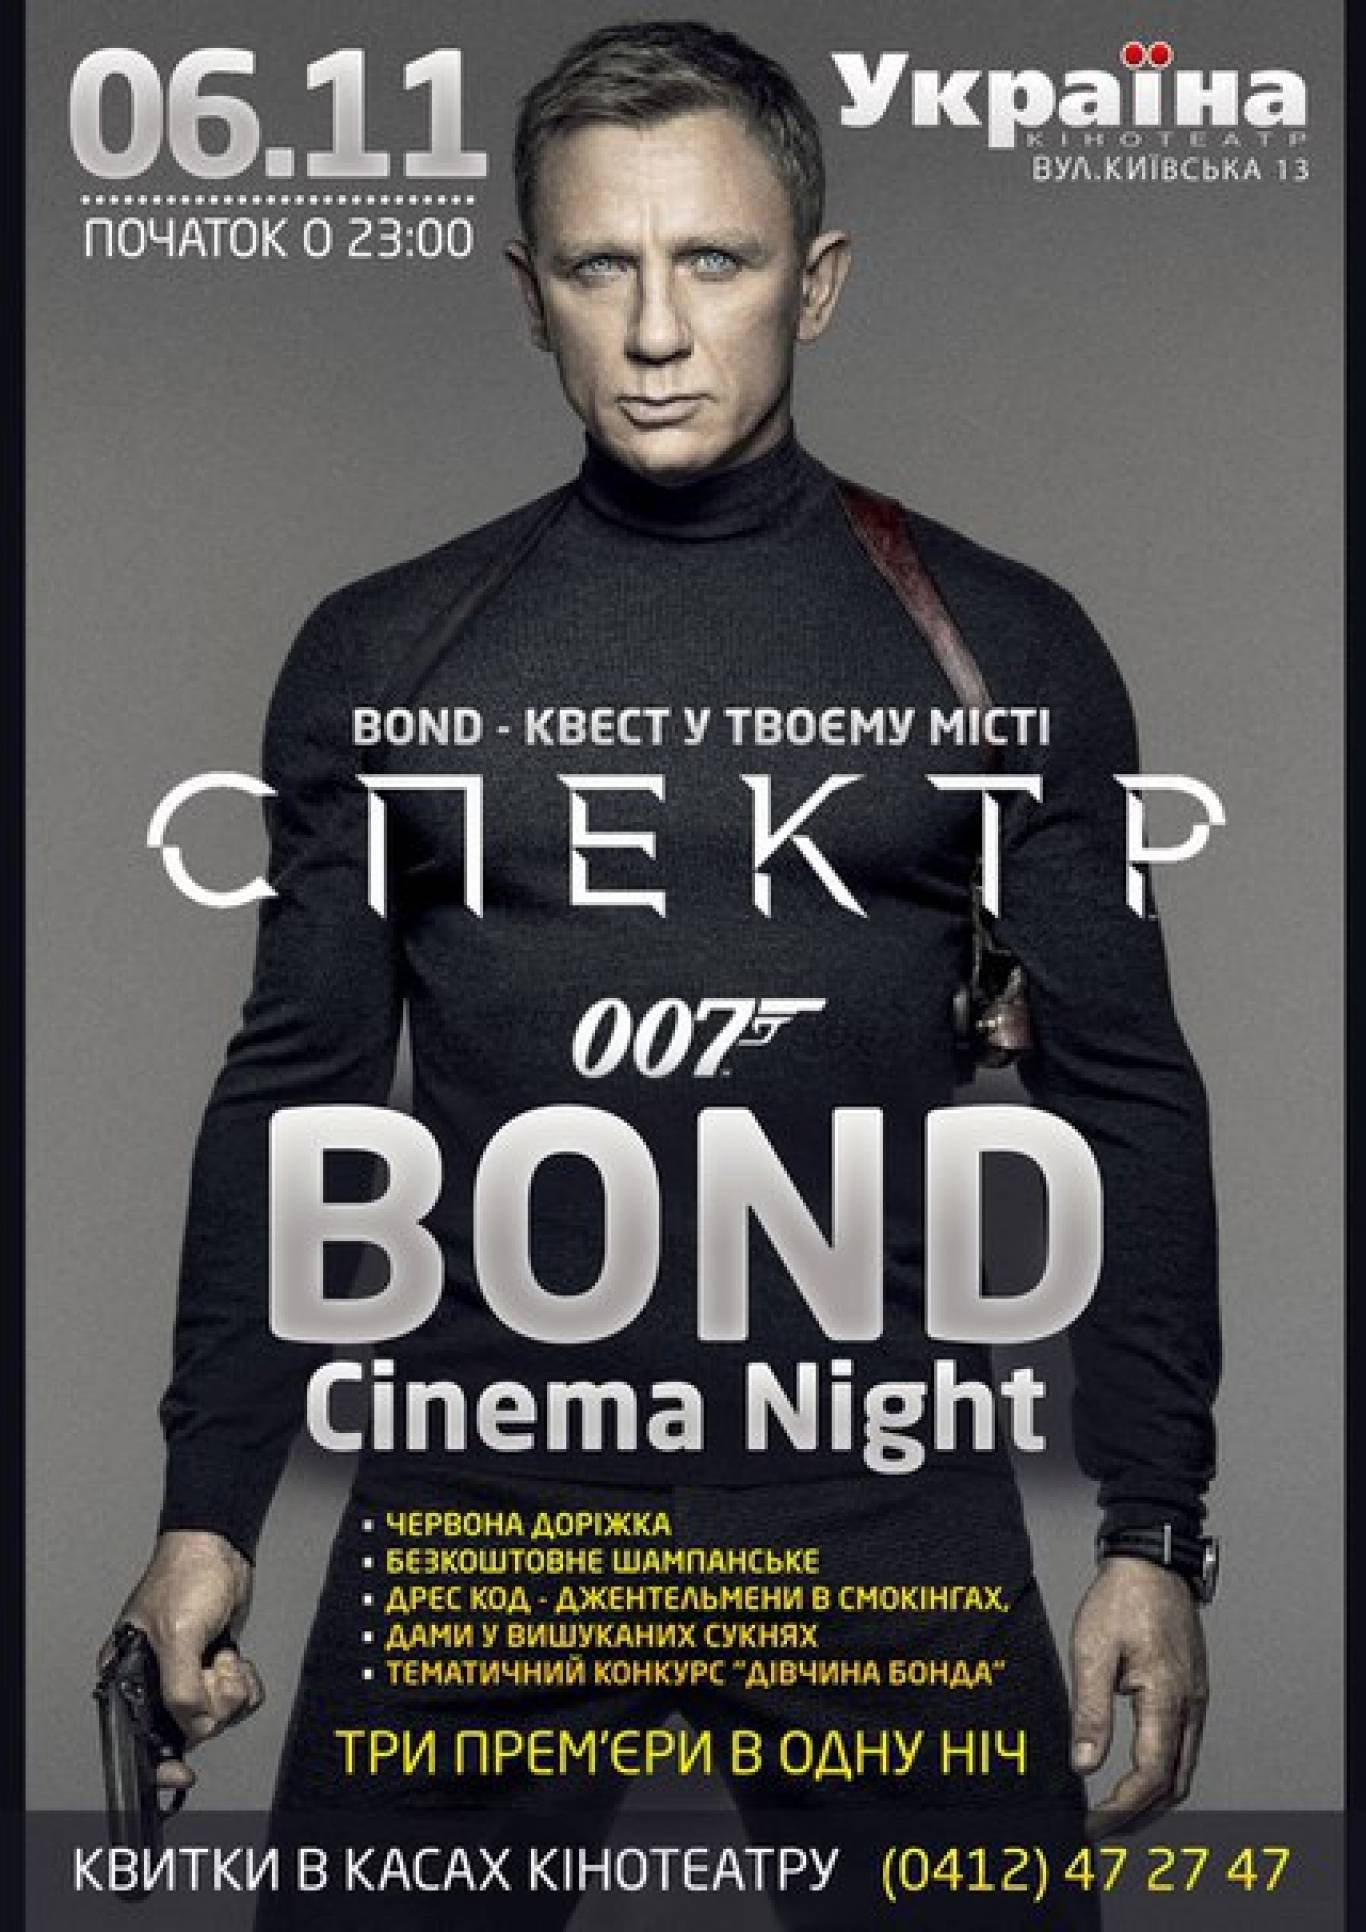 BOND cinema night